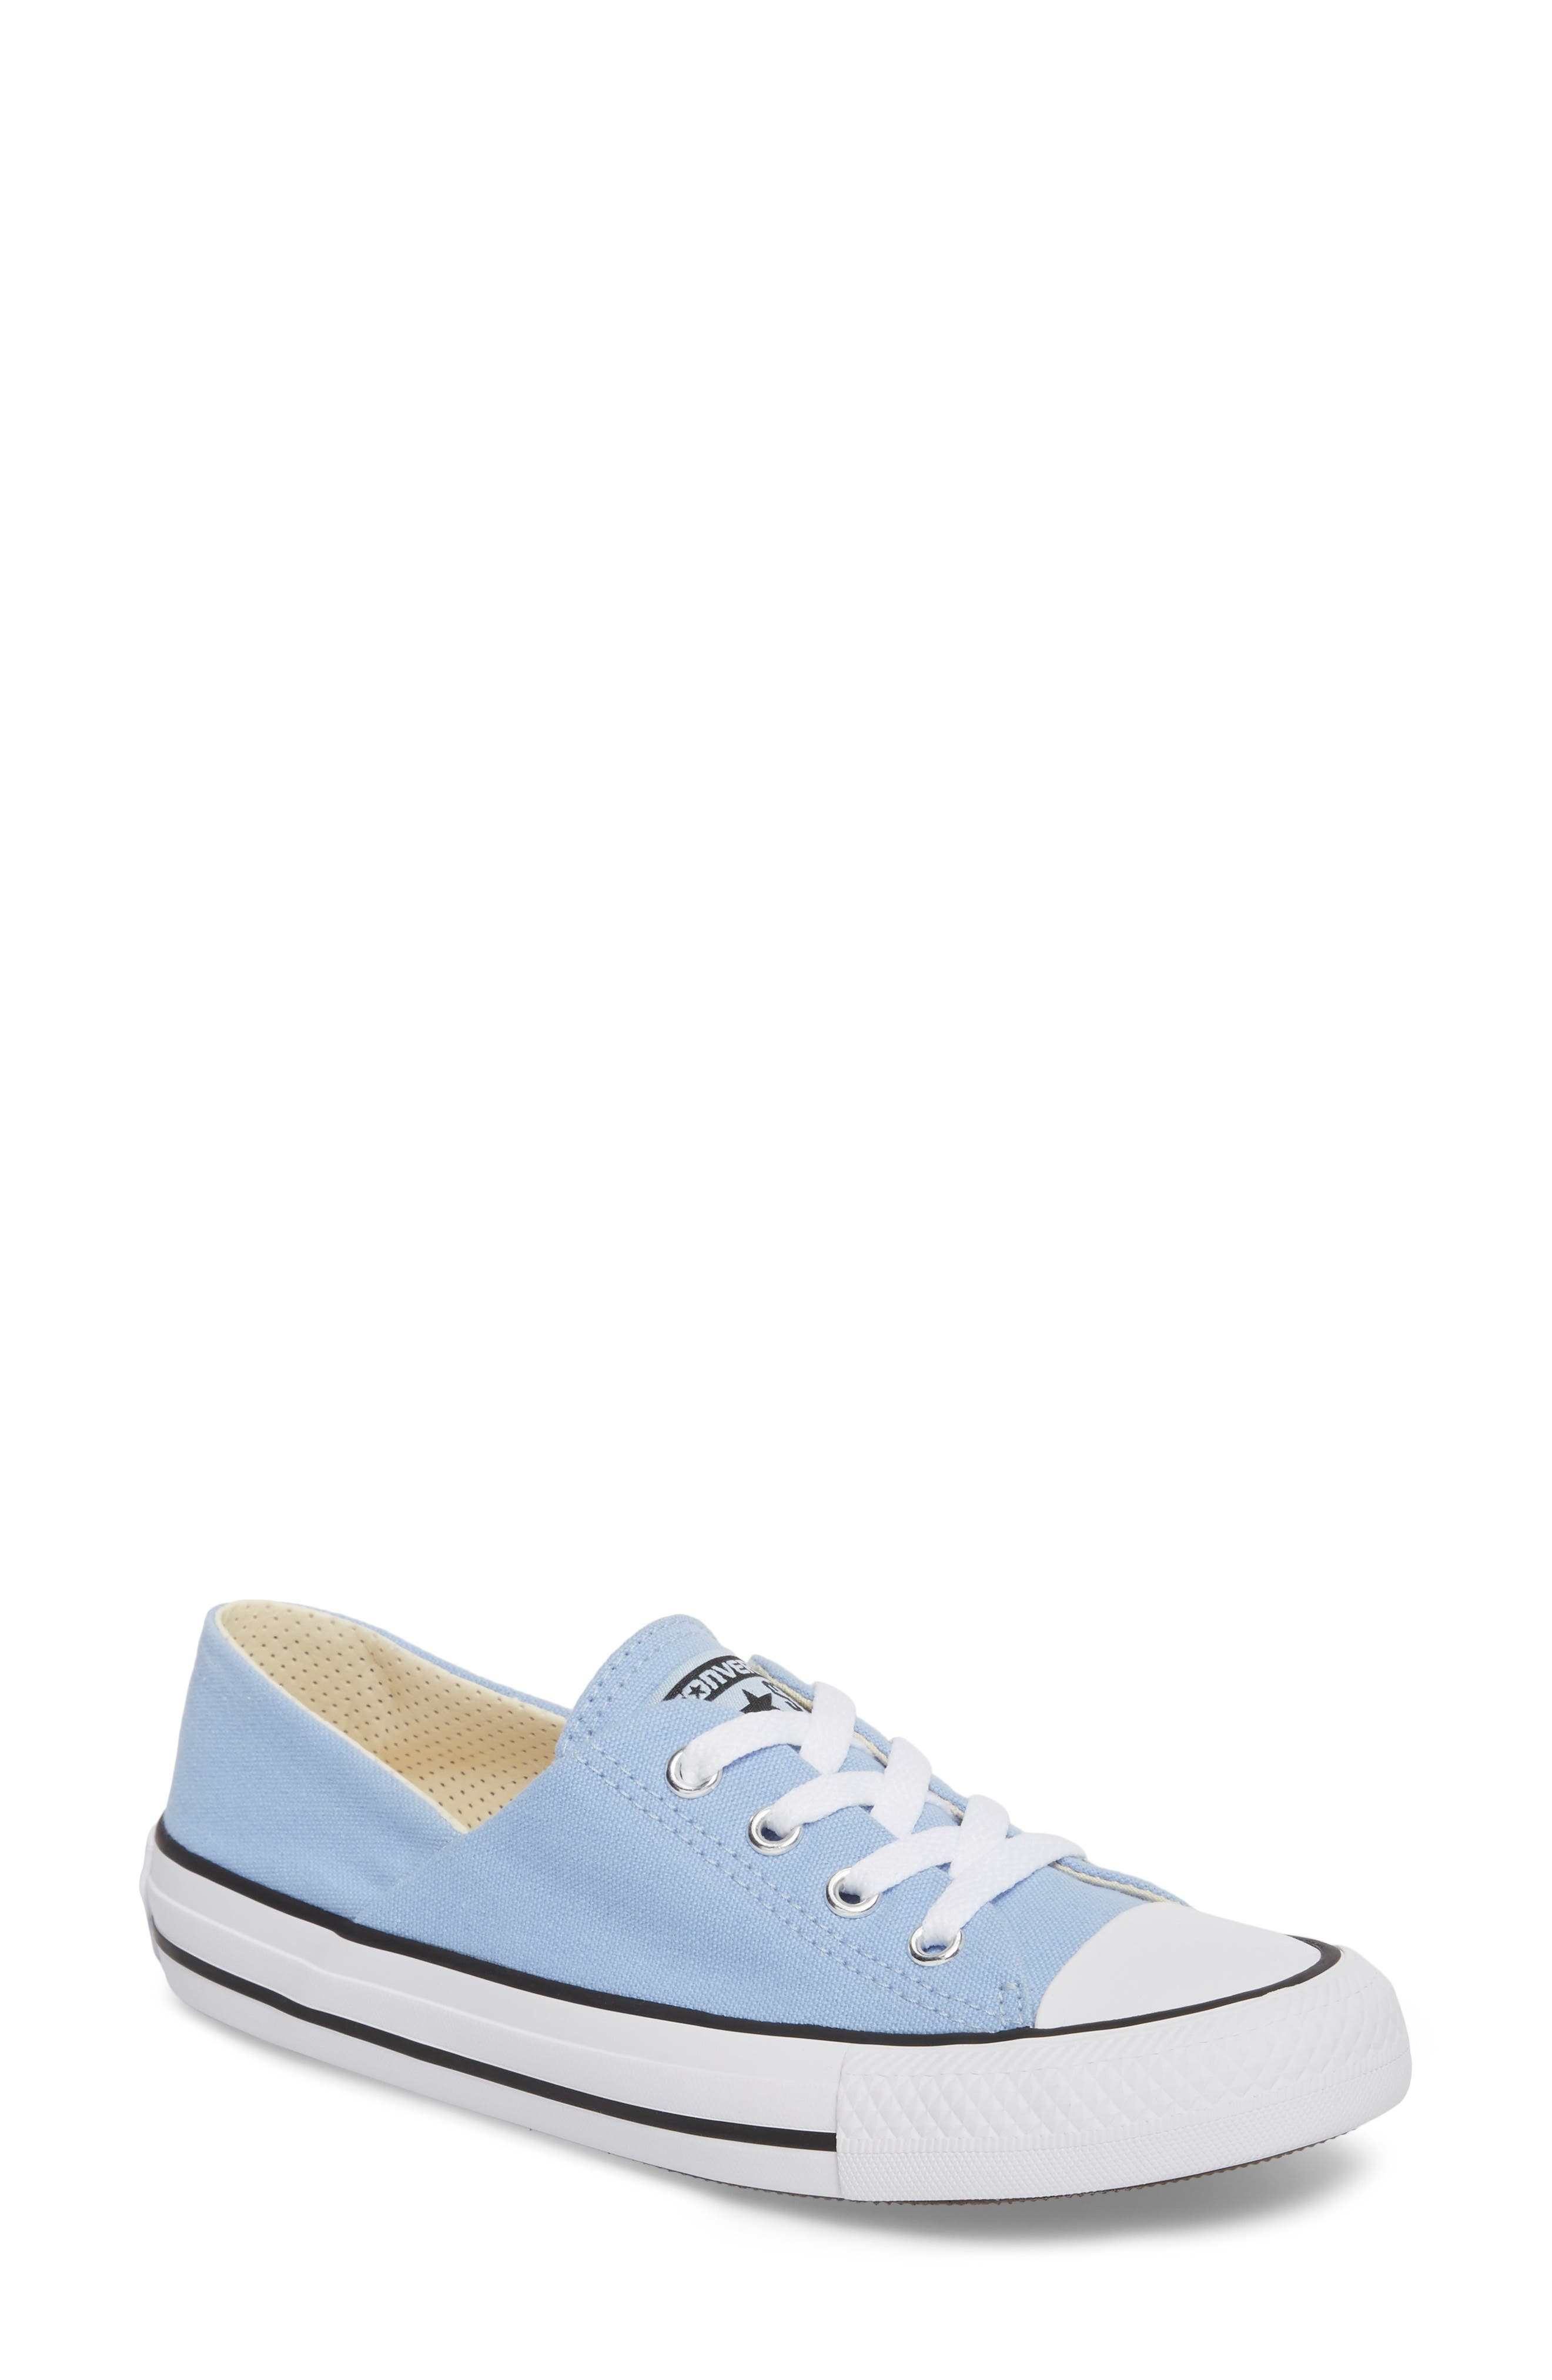 Chuck Taylor<sup>®</sup> All Star<sup>®</sup> Coral Ox Low Top Sneaker,                             Main thumbnail 1, color,                             457